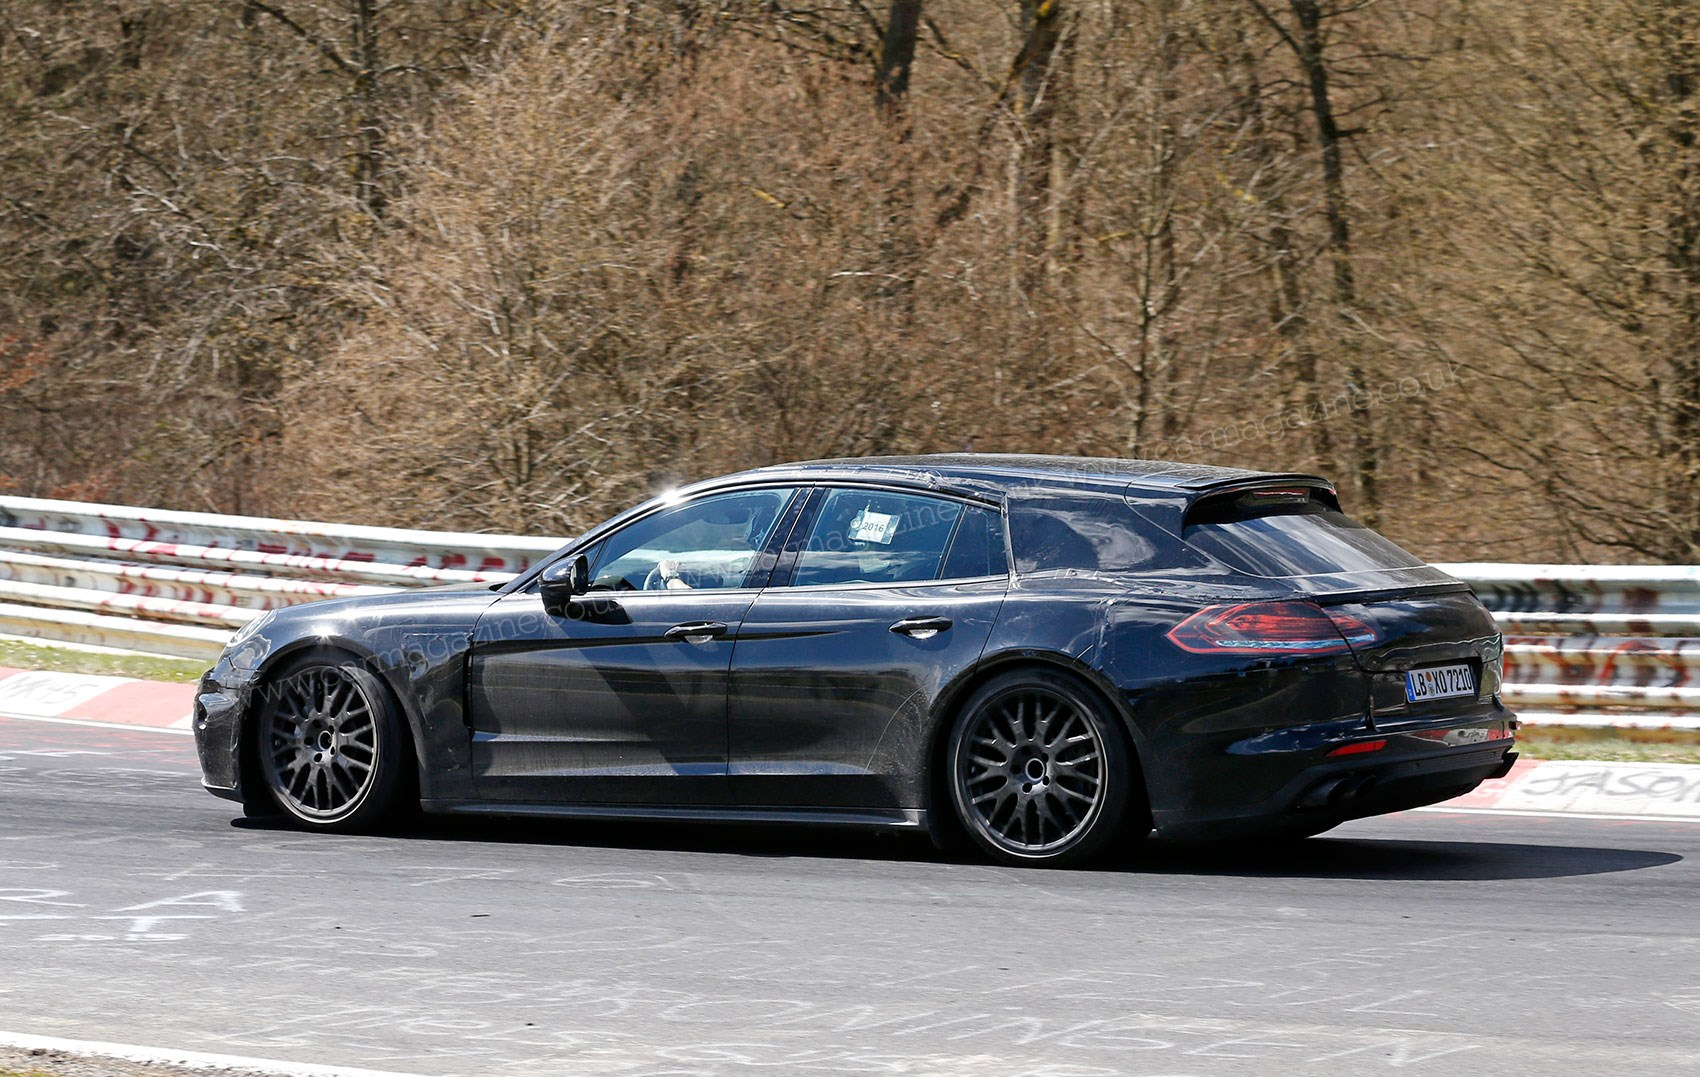 Porsche Panamera G2 hybrids and wagon 'on the way' by CAR ...